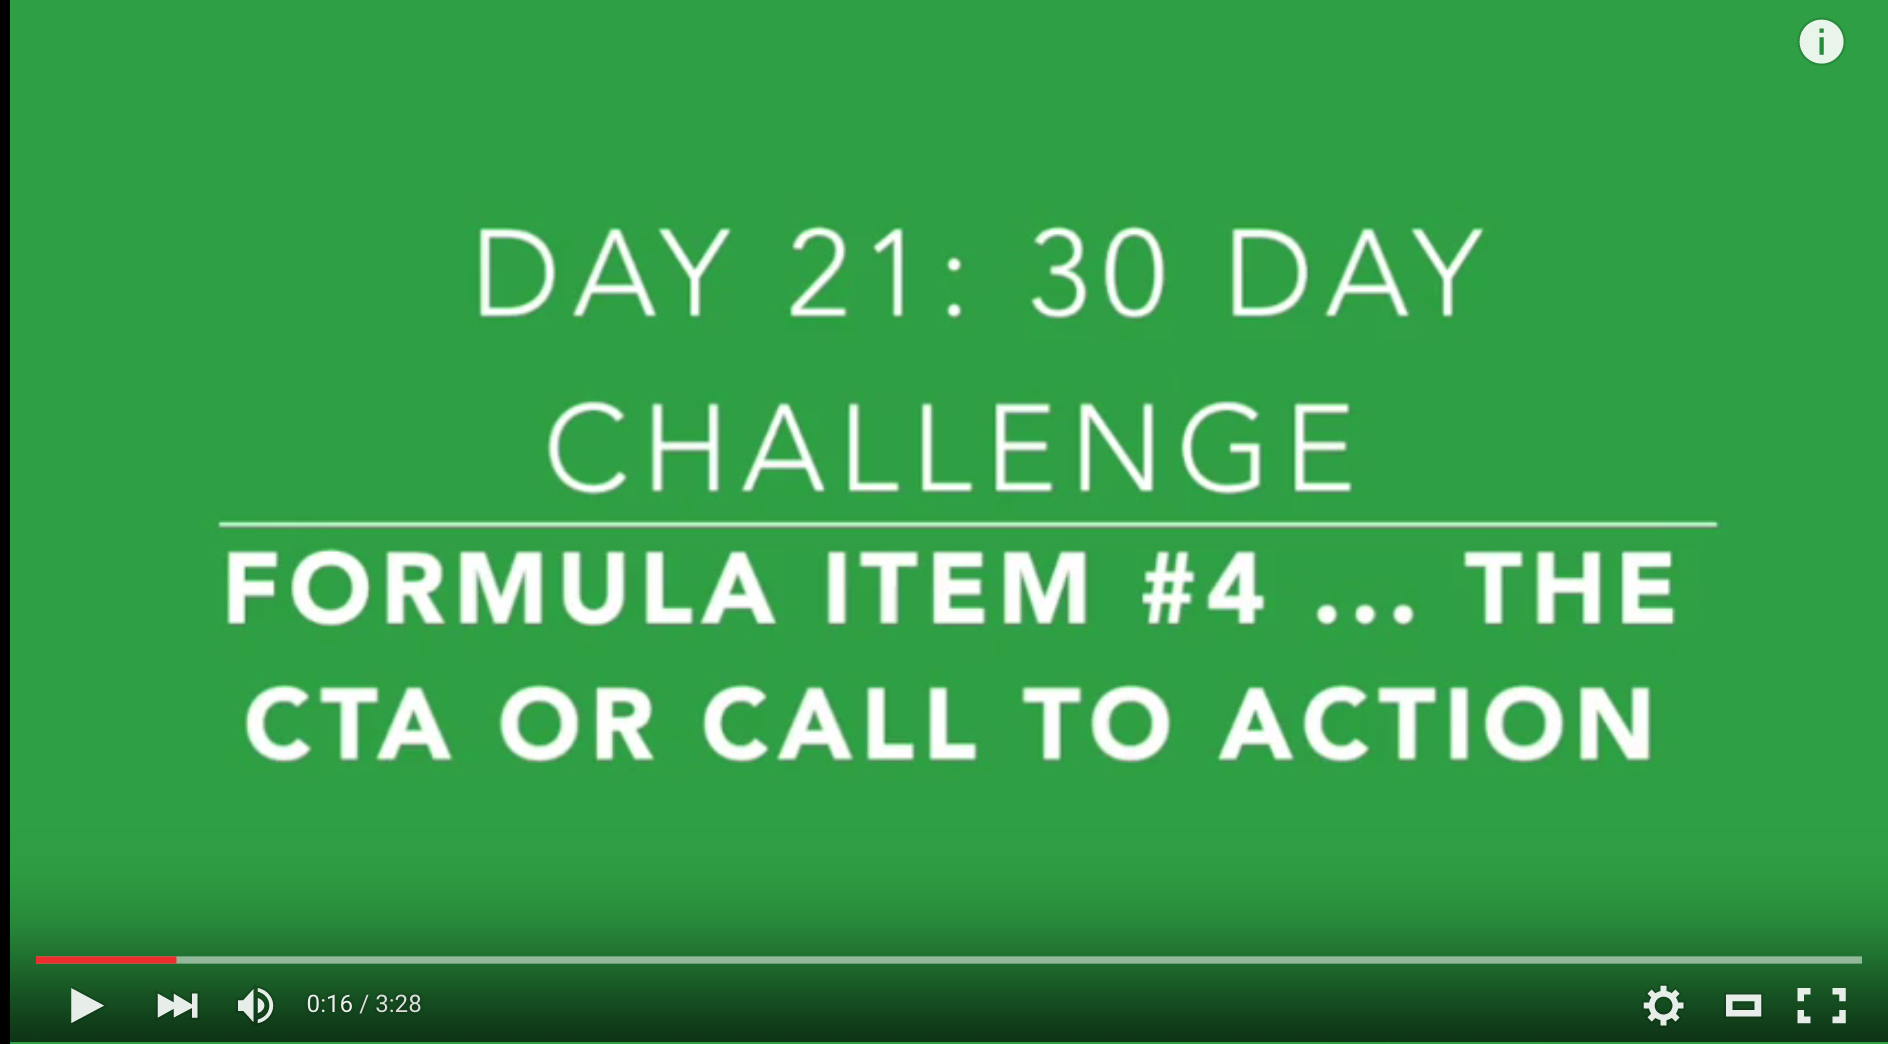 Day 21: The 4th Ingredient: The CTA or Call-To-Action for Your Short Form Video